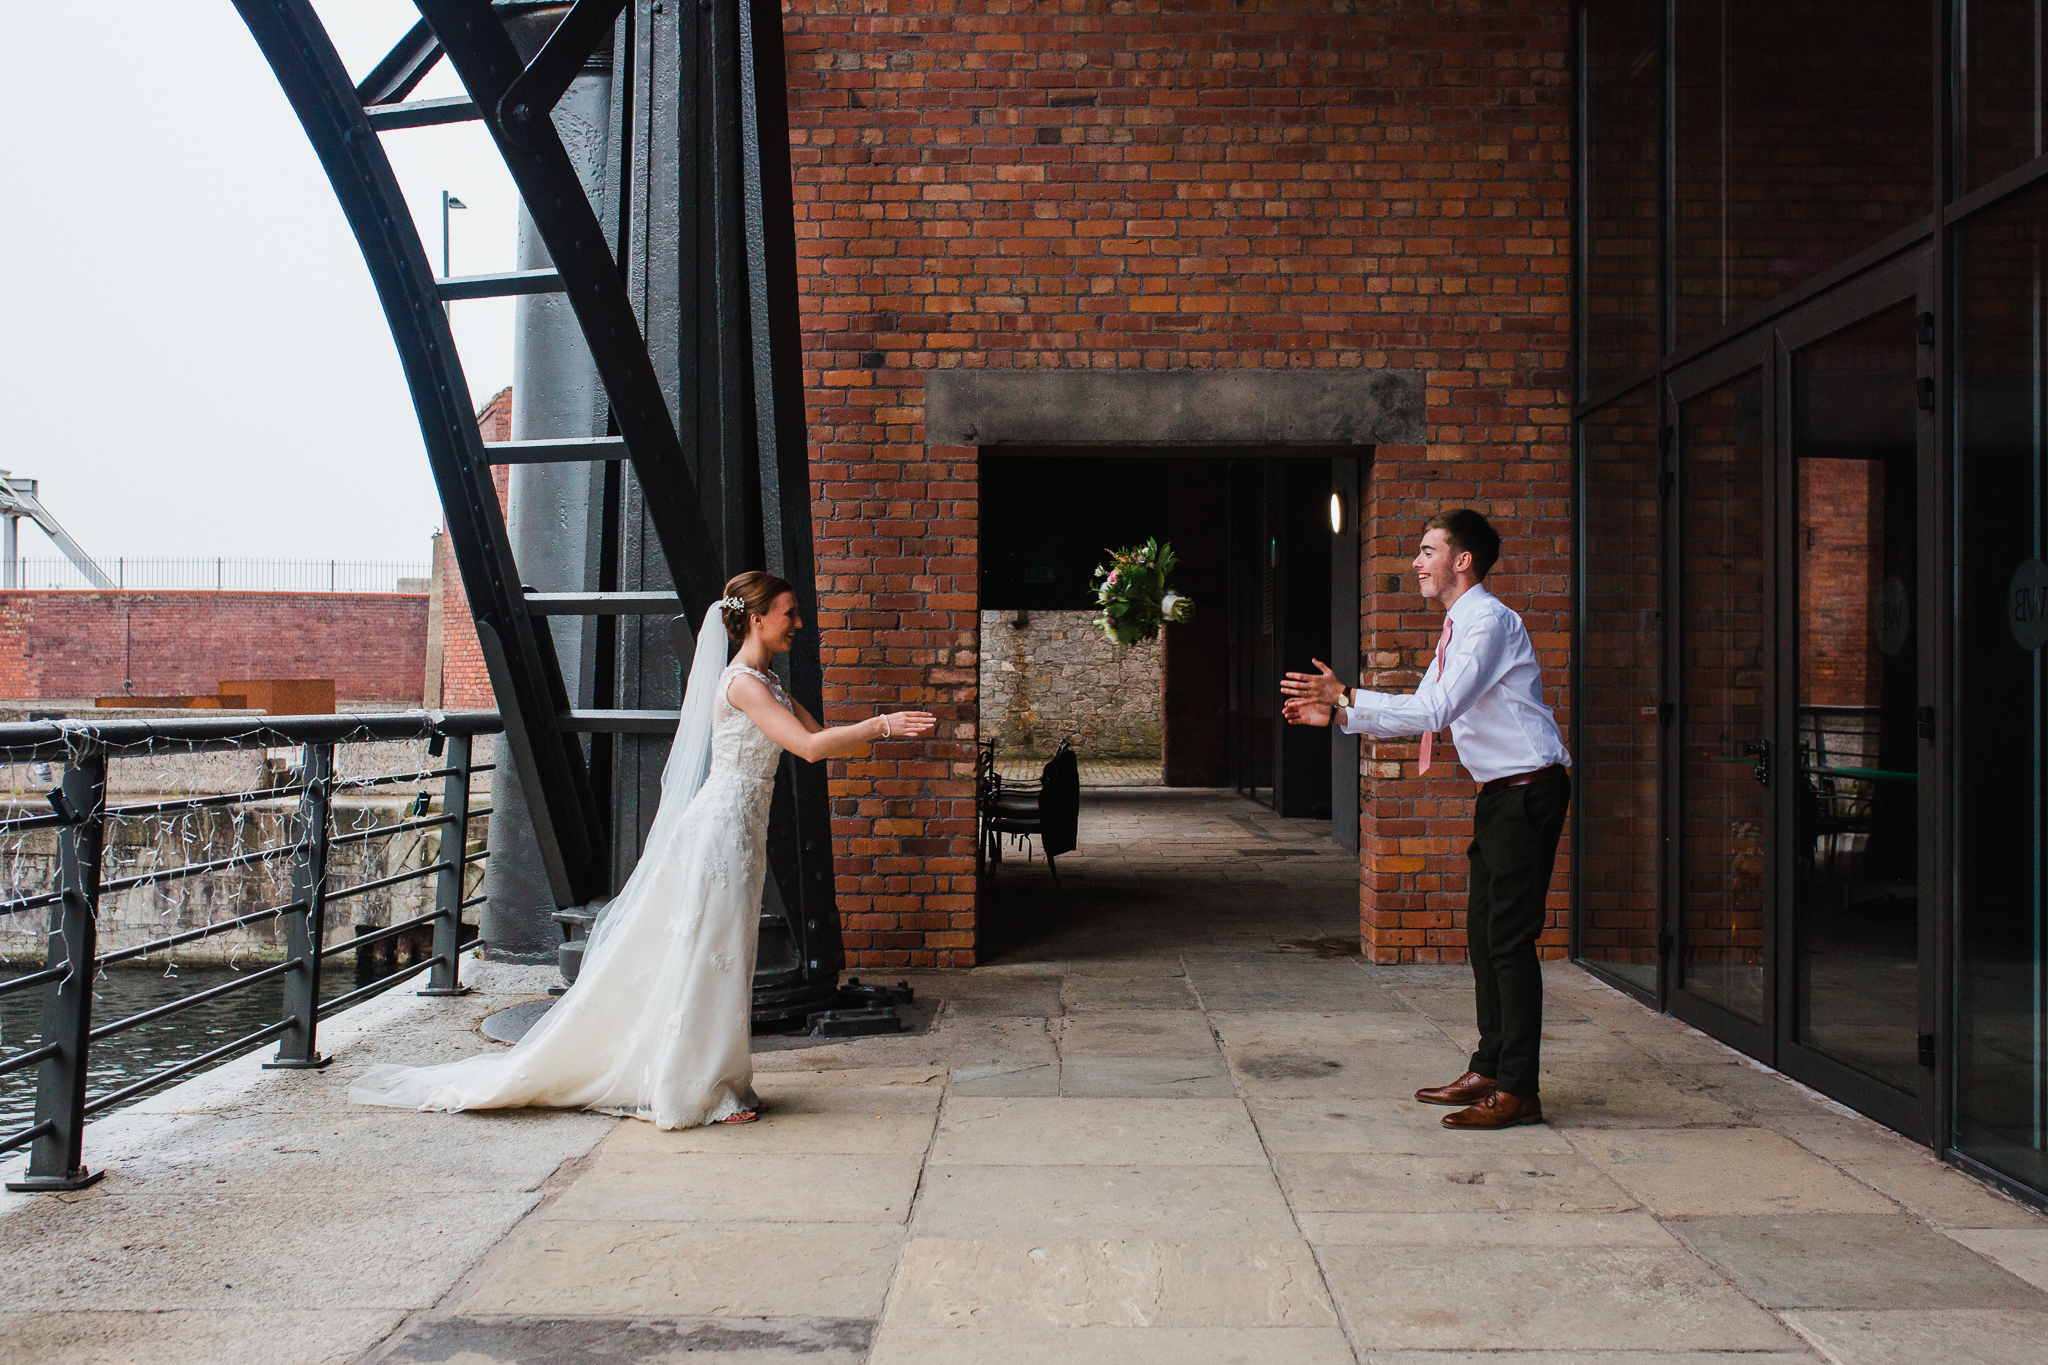 Jess and Ben - Liverpool wedding - bride and groom playing catch with the bouquet